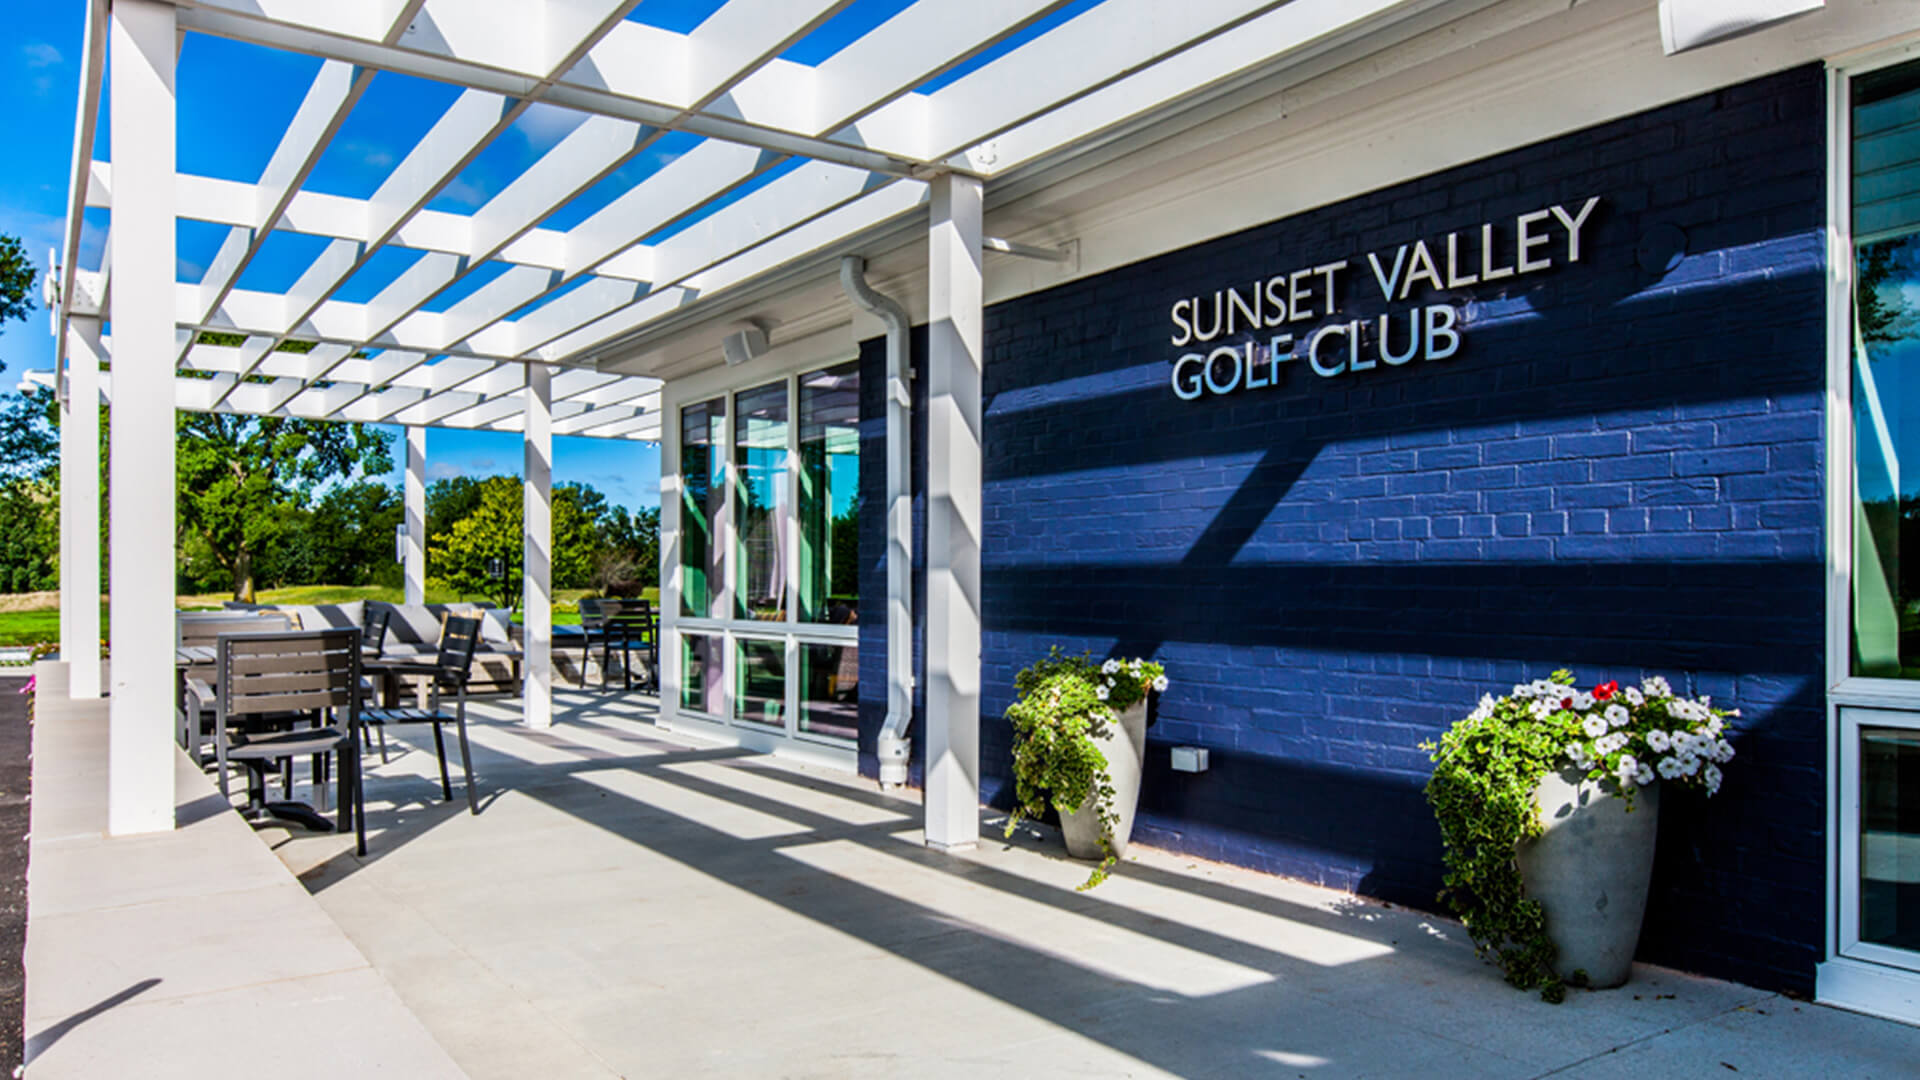 Sunset Valley Golf Clubhouse - Park District of Highland Park